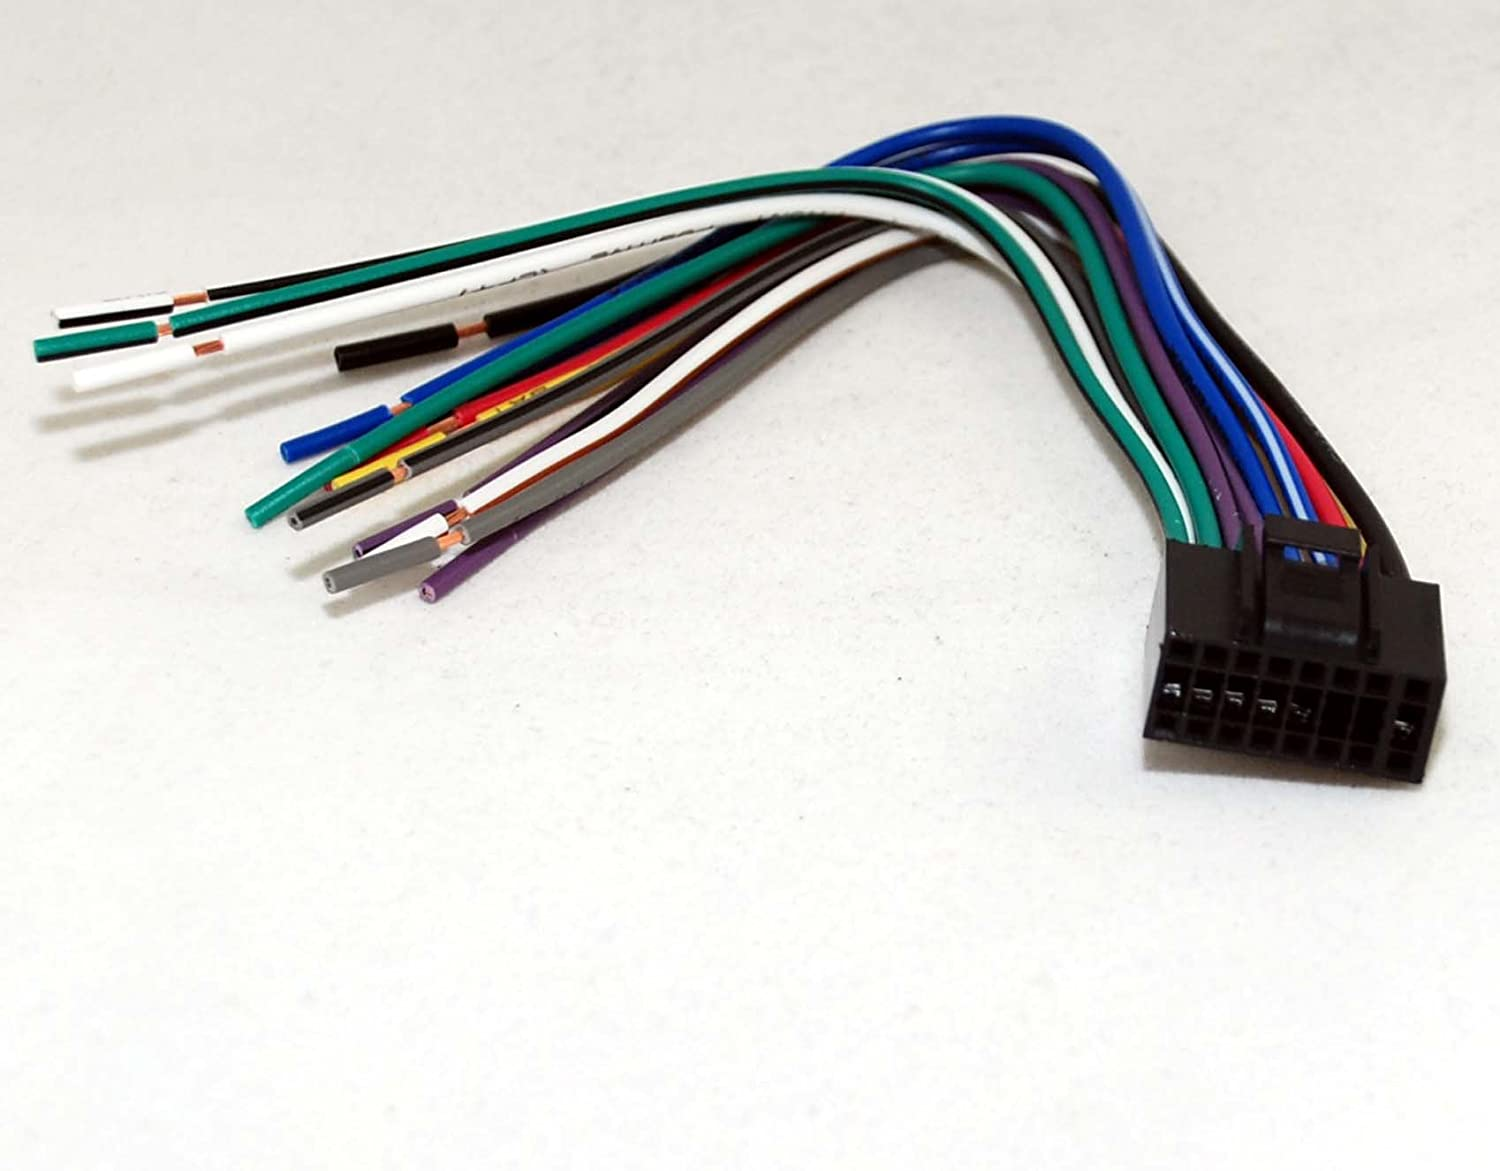 61Rzeblbo0L._SL1500_ amazon com xtenzi harness for dual 16 pin wire harness xdvd8181 Wire Harness Assembly at edmiracle.co